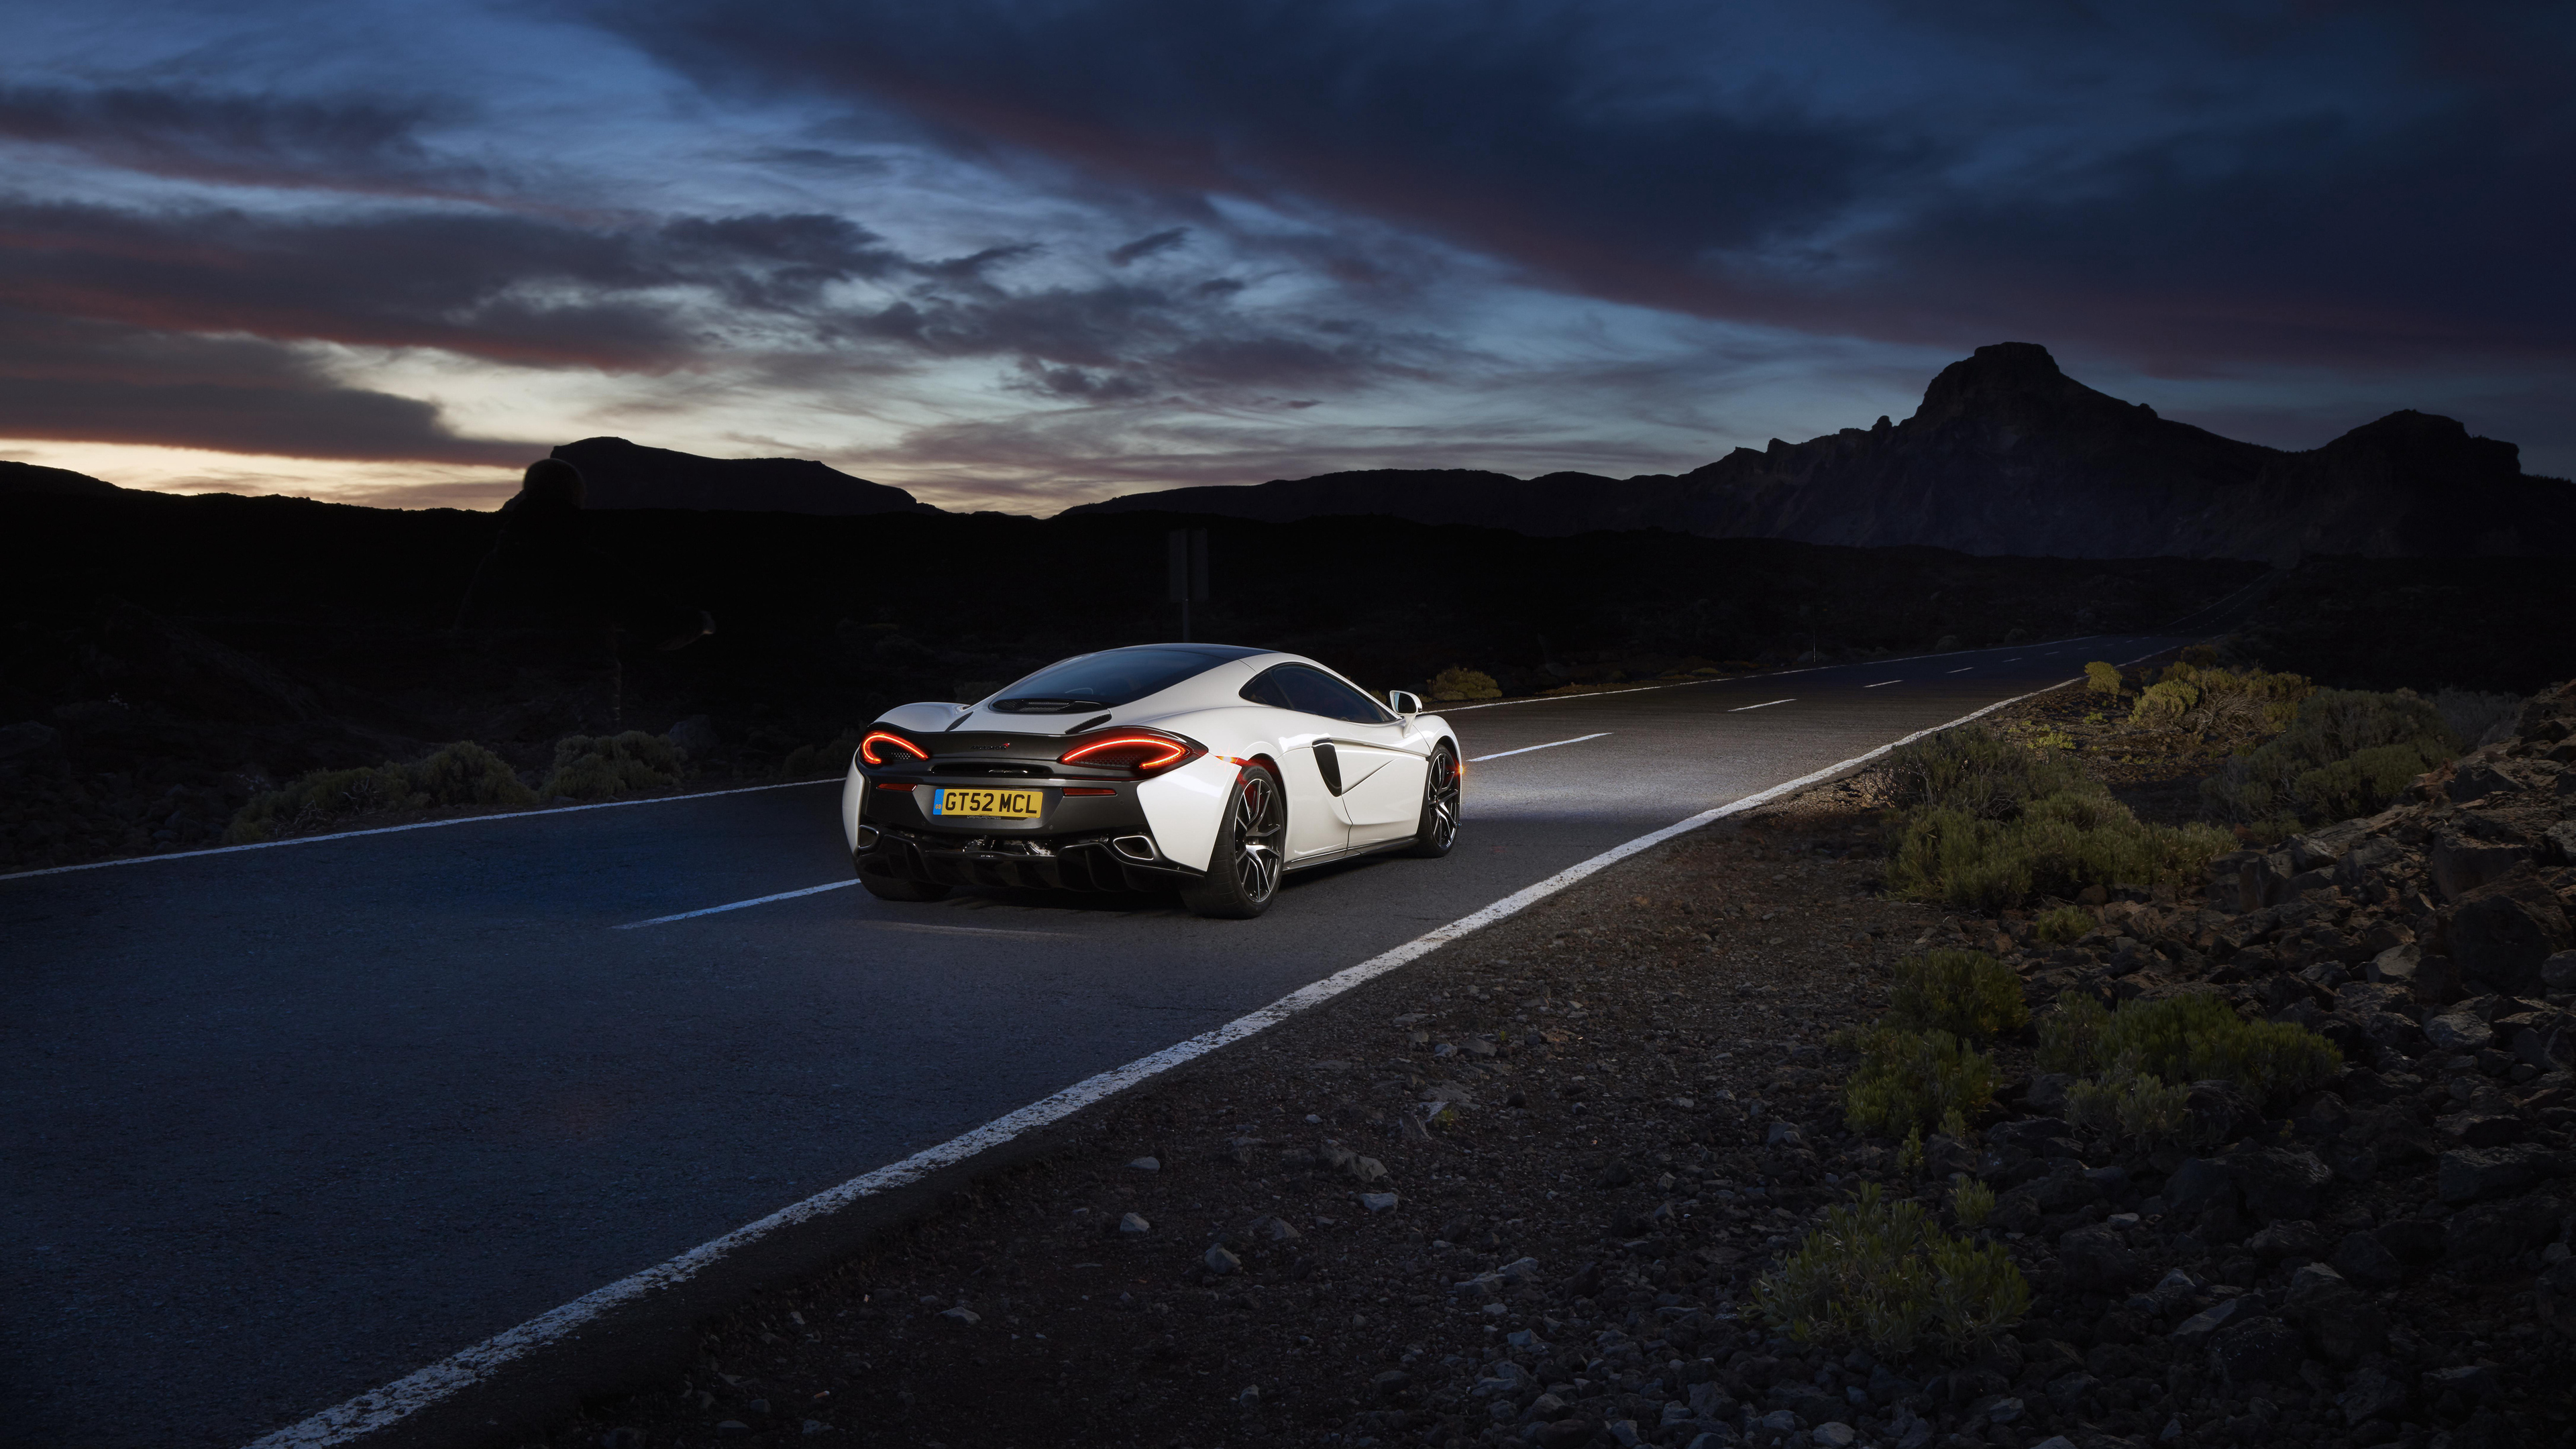 mclaren 570gt super car 1539104723 - Mclaren 570GT Super Car - mclaren wallpapers, cars wallpapers